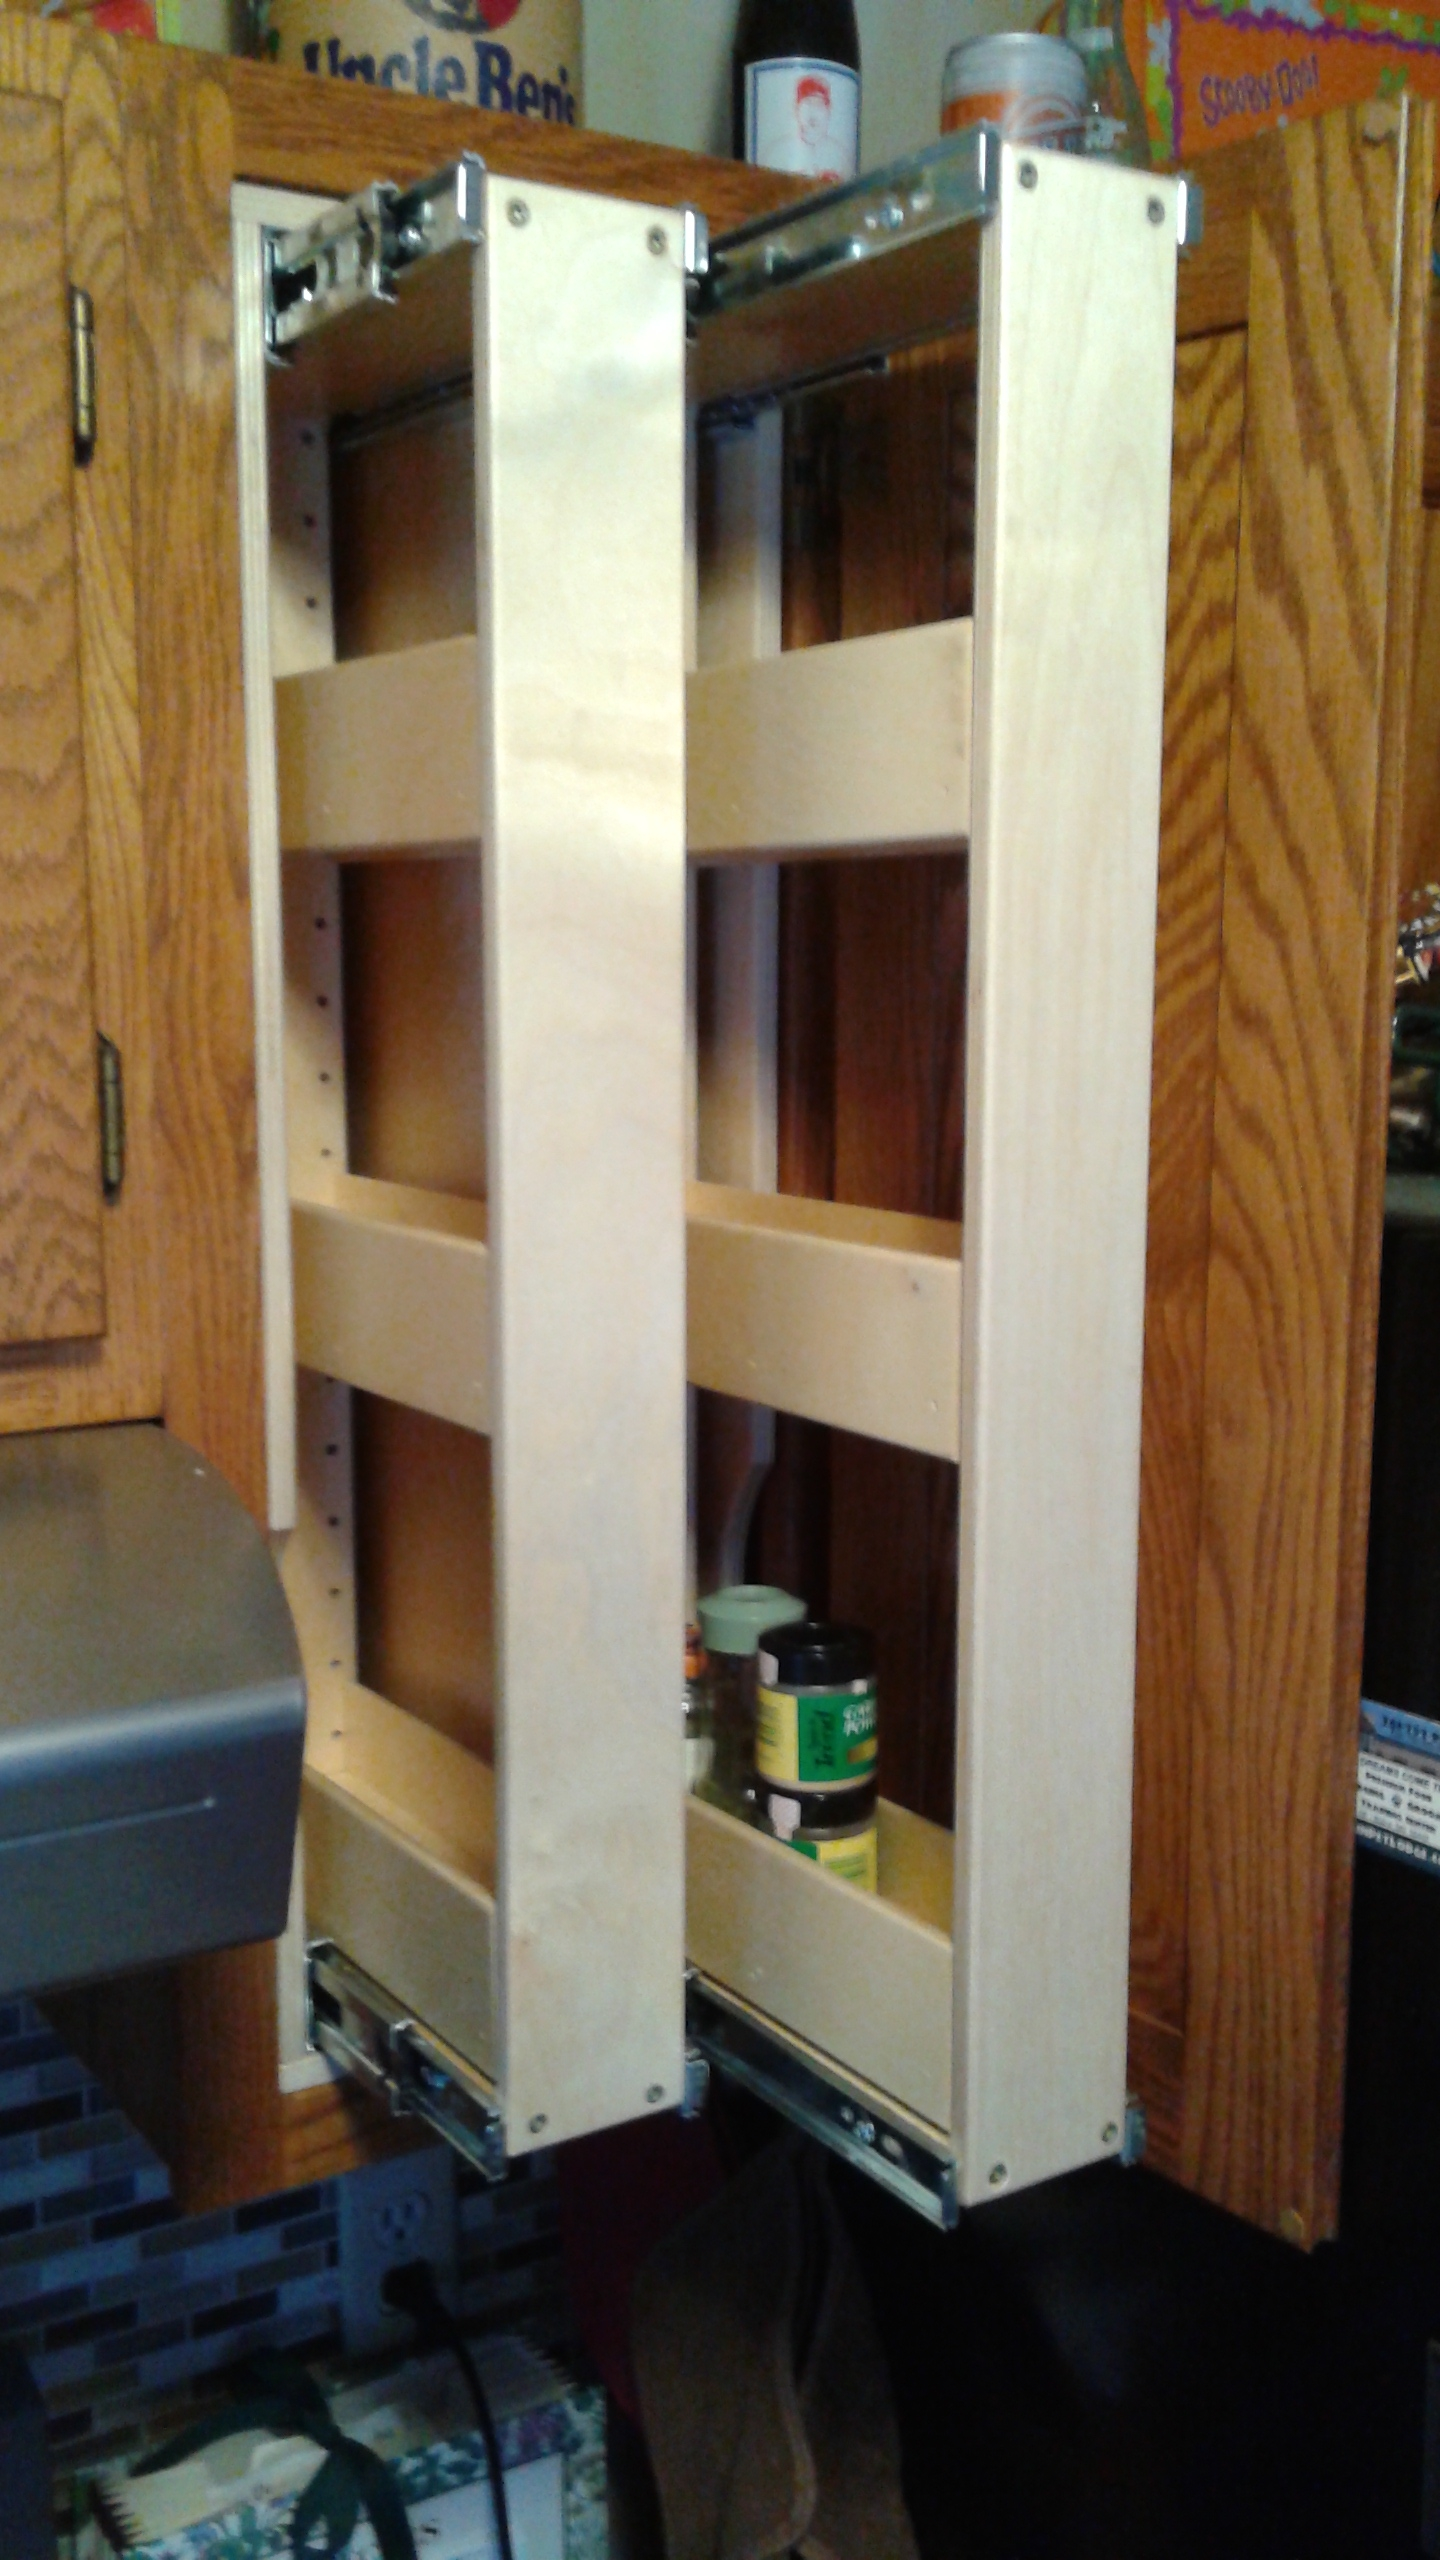 Beau Vertical Pull Out Spice Racks